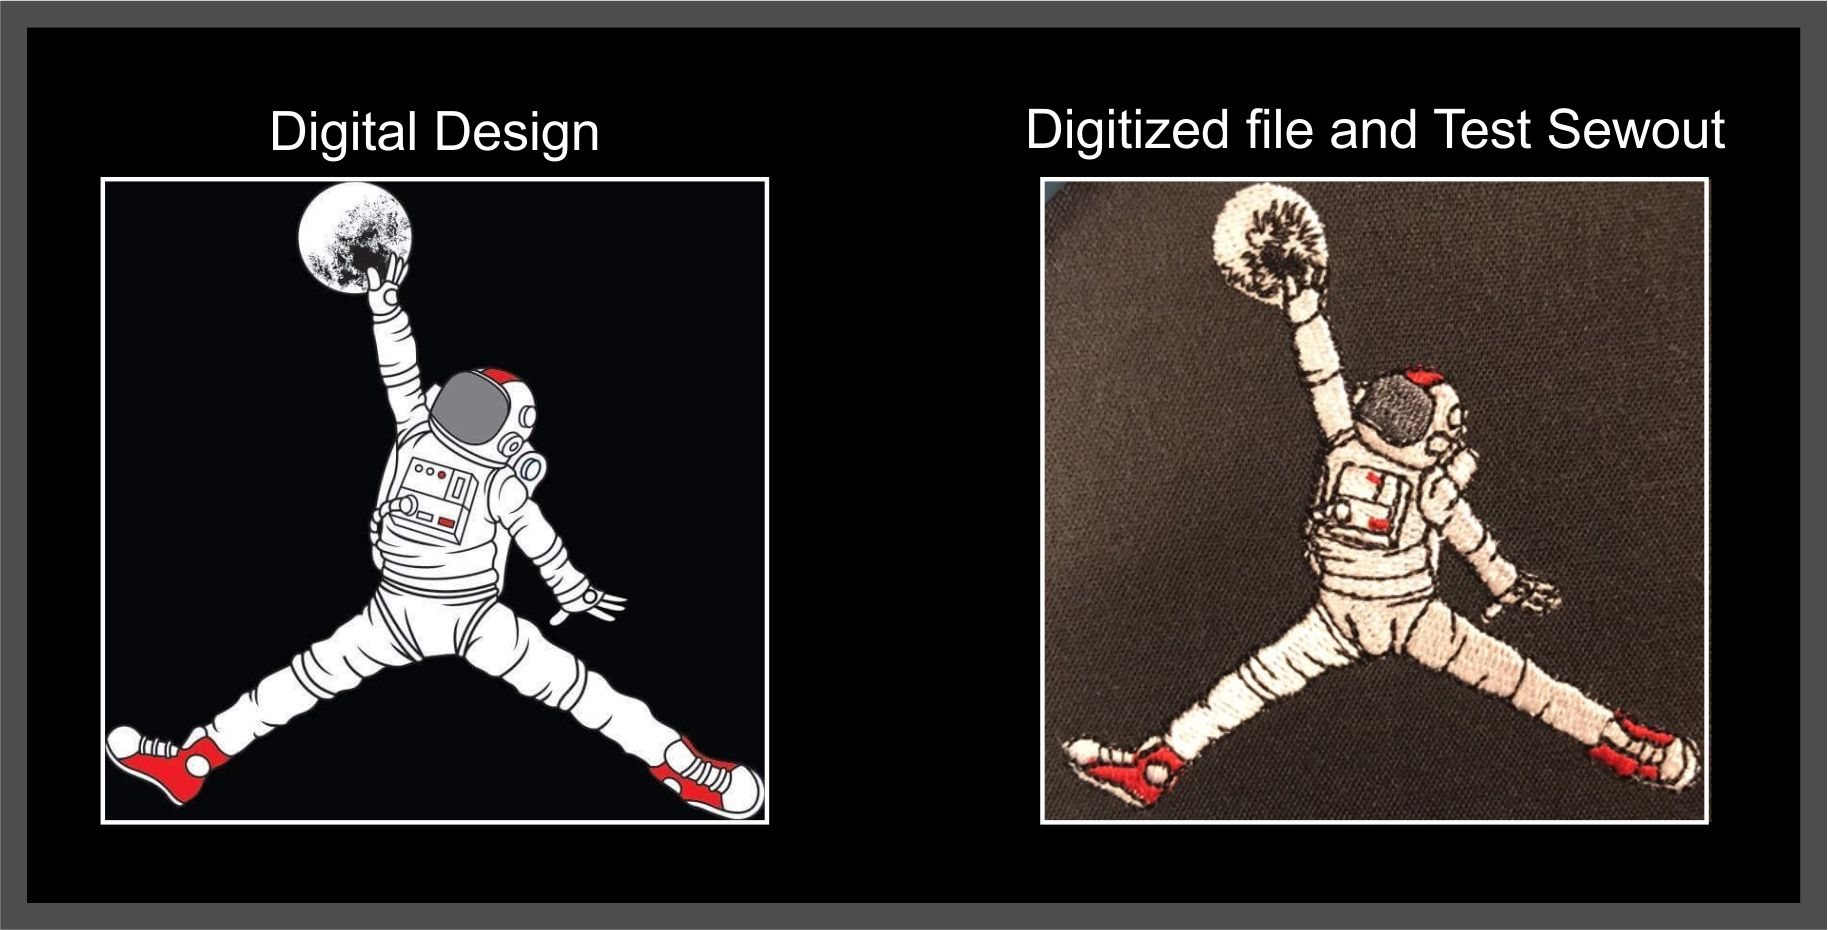 Design Digitizing explained